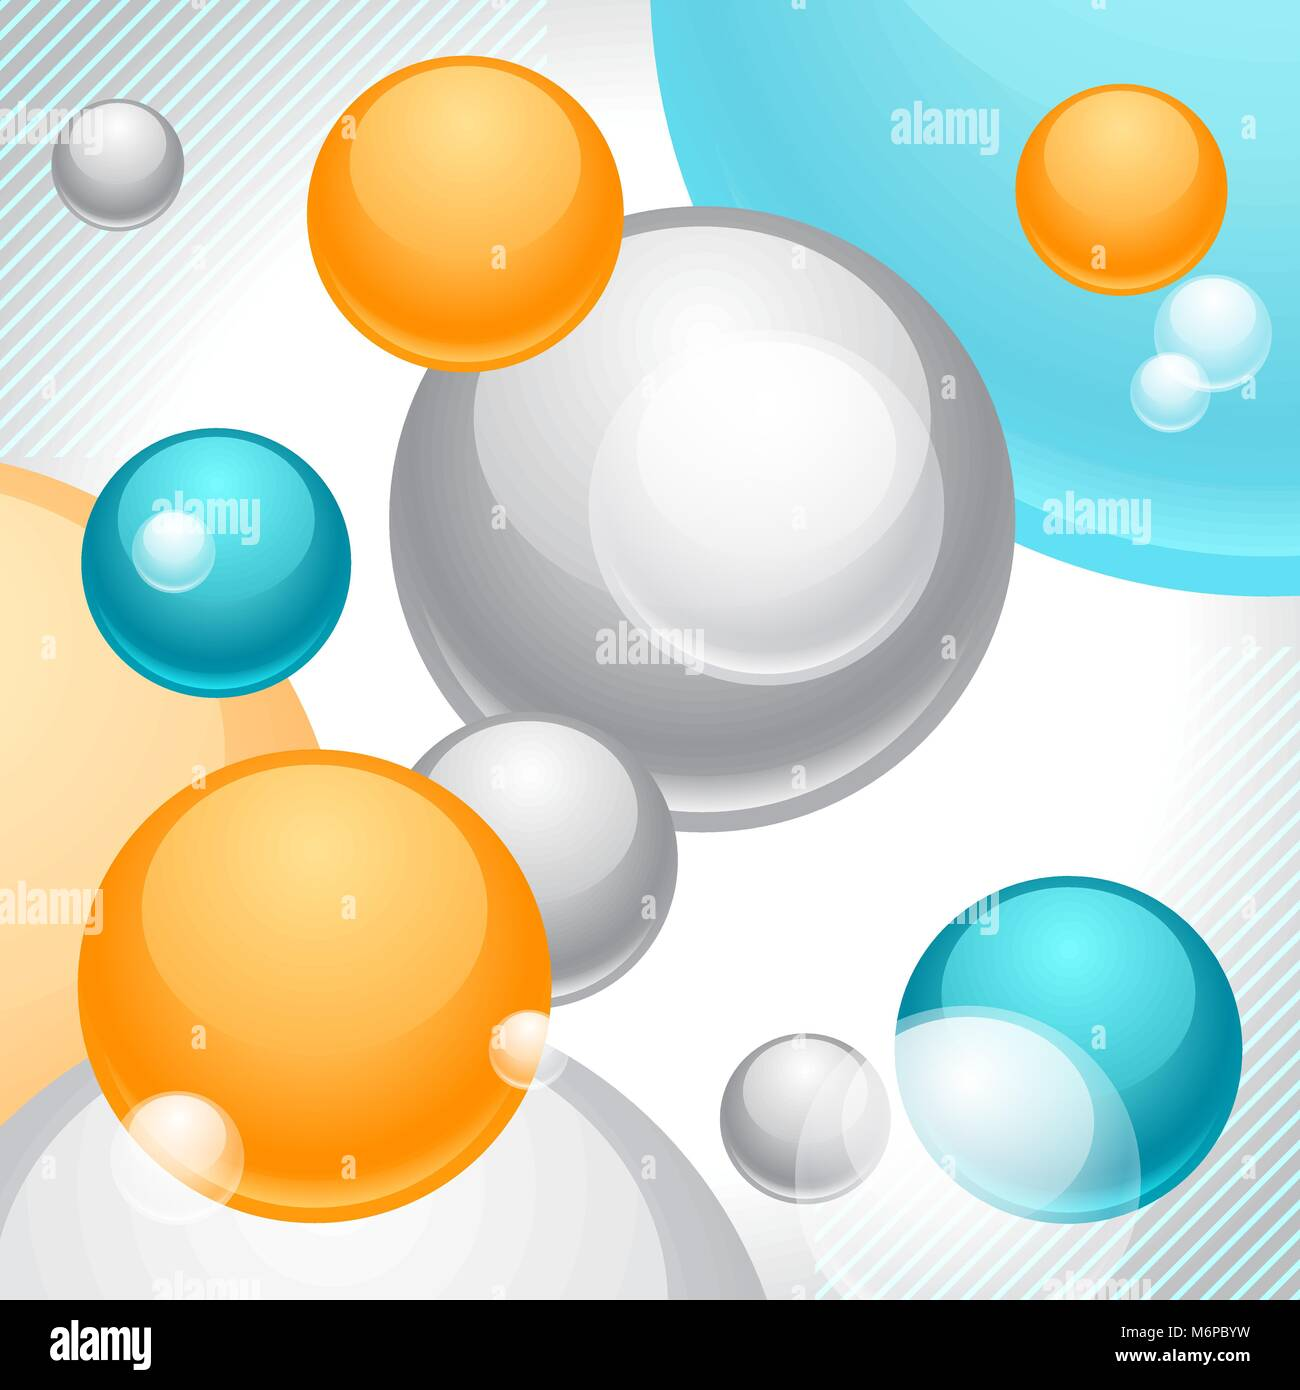 Abstract geometric background, design template - Stock Vector